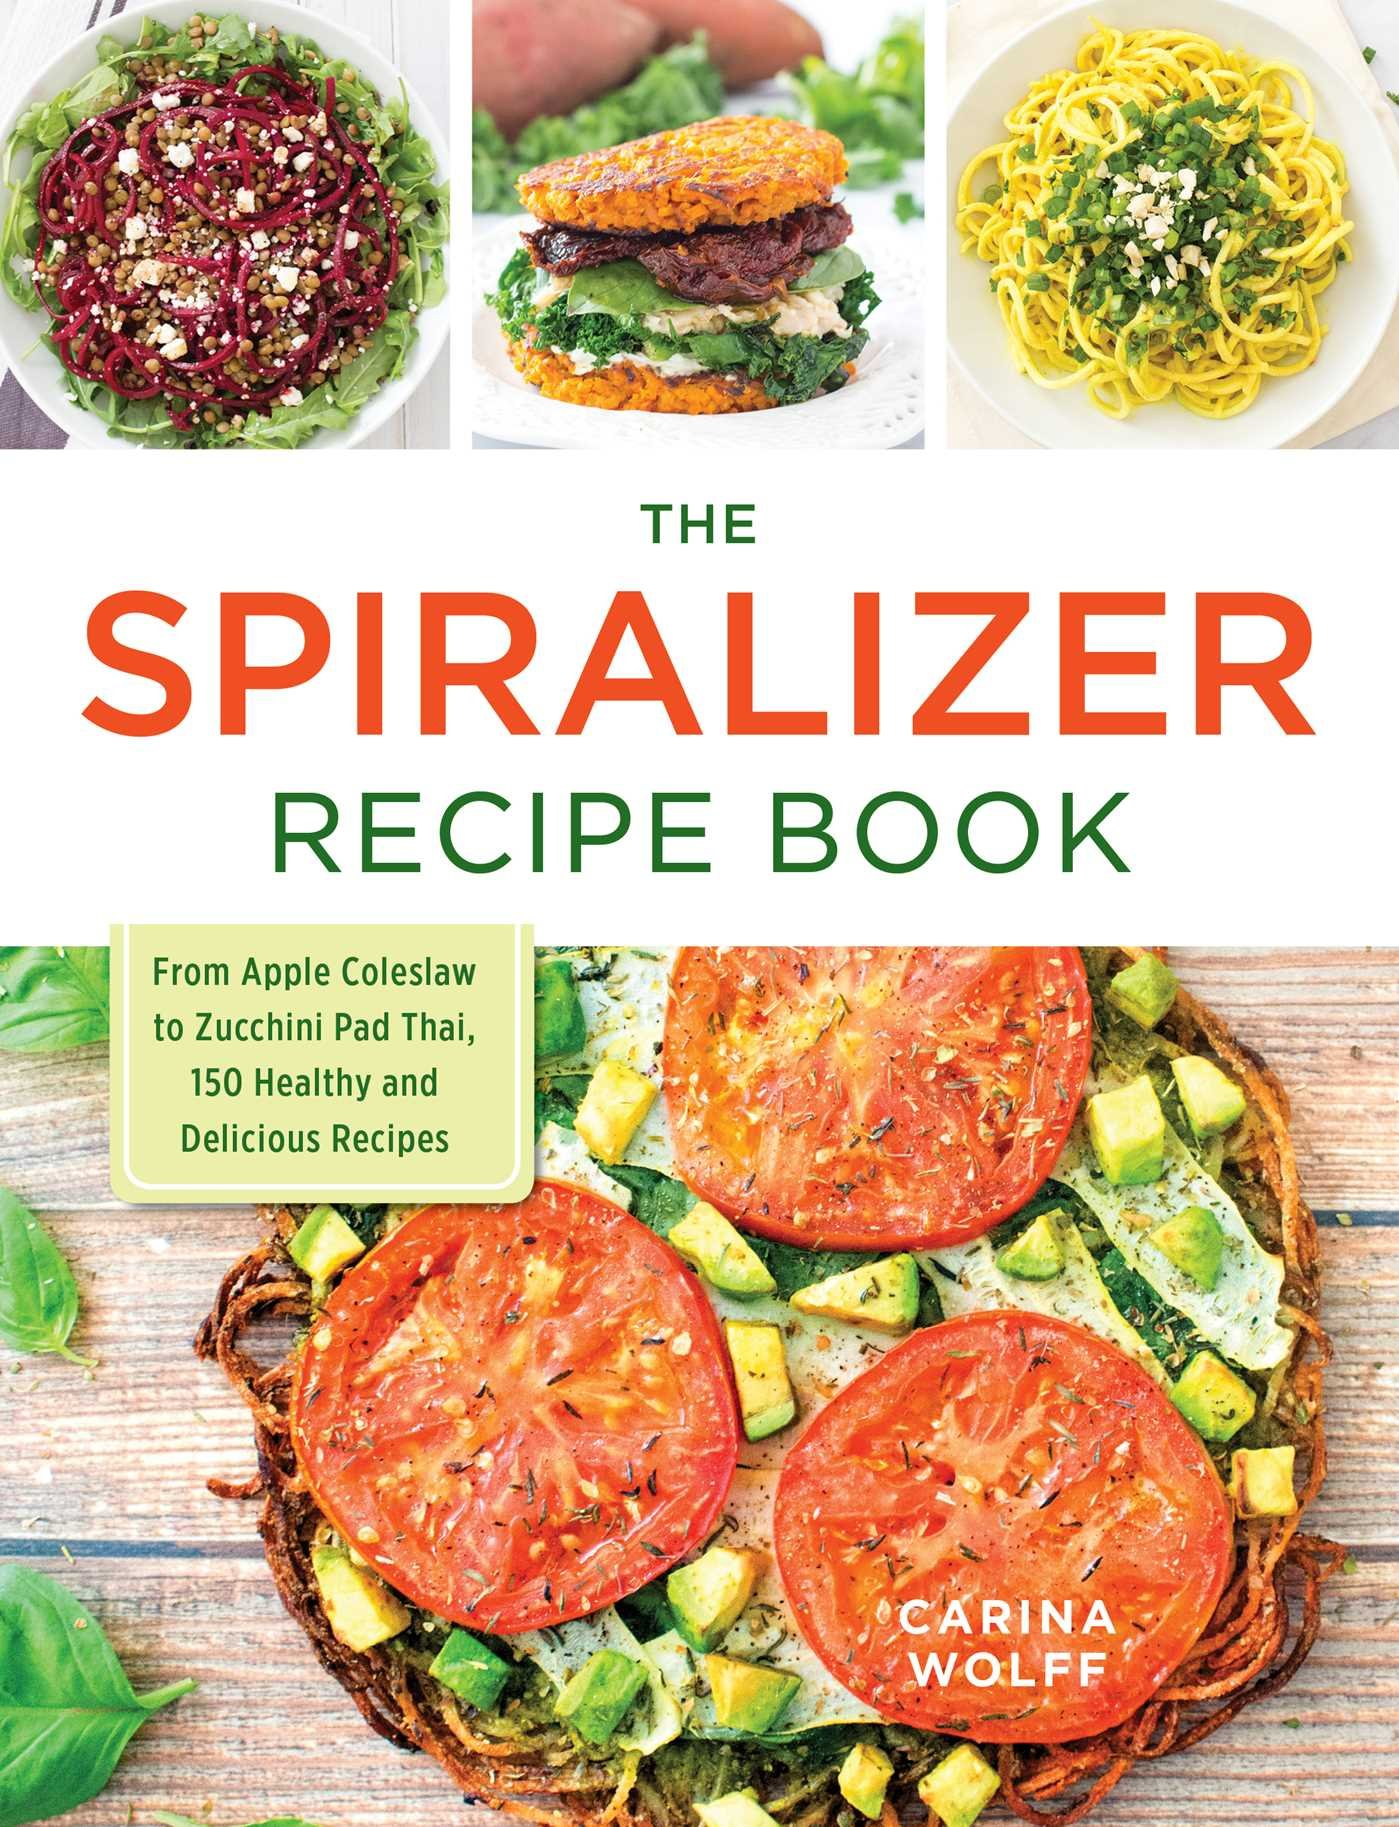 Spiralizer Recipe Book Coleslaw Delicious product image